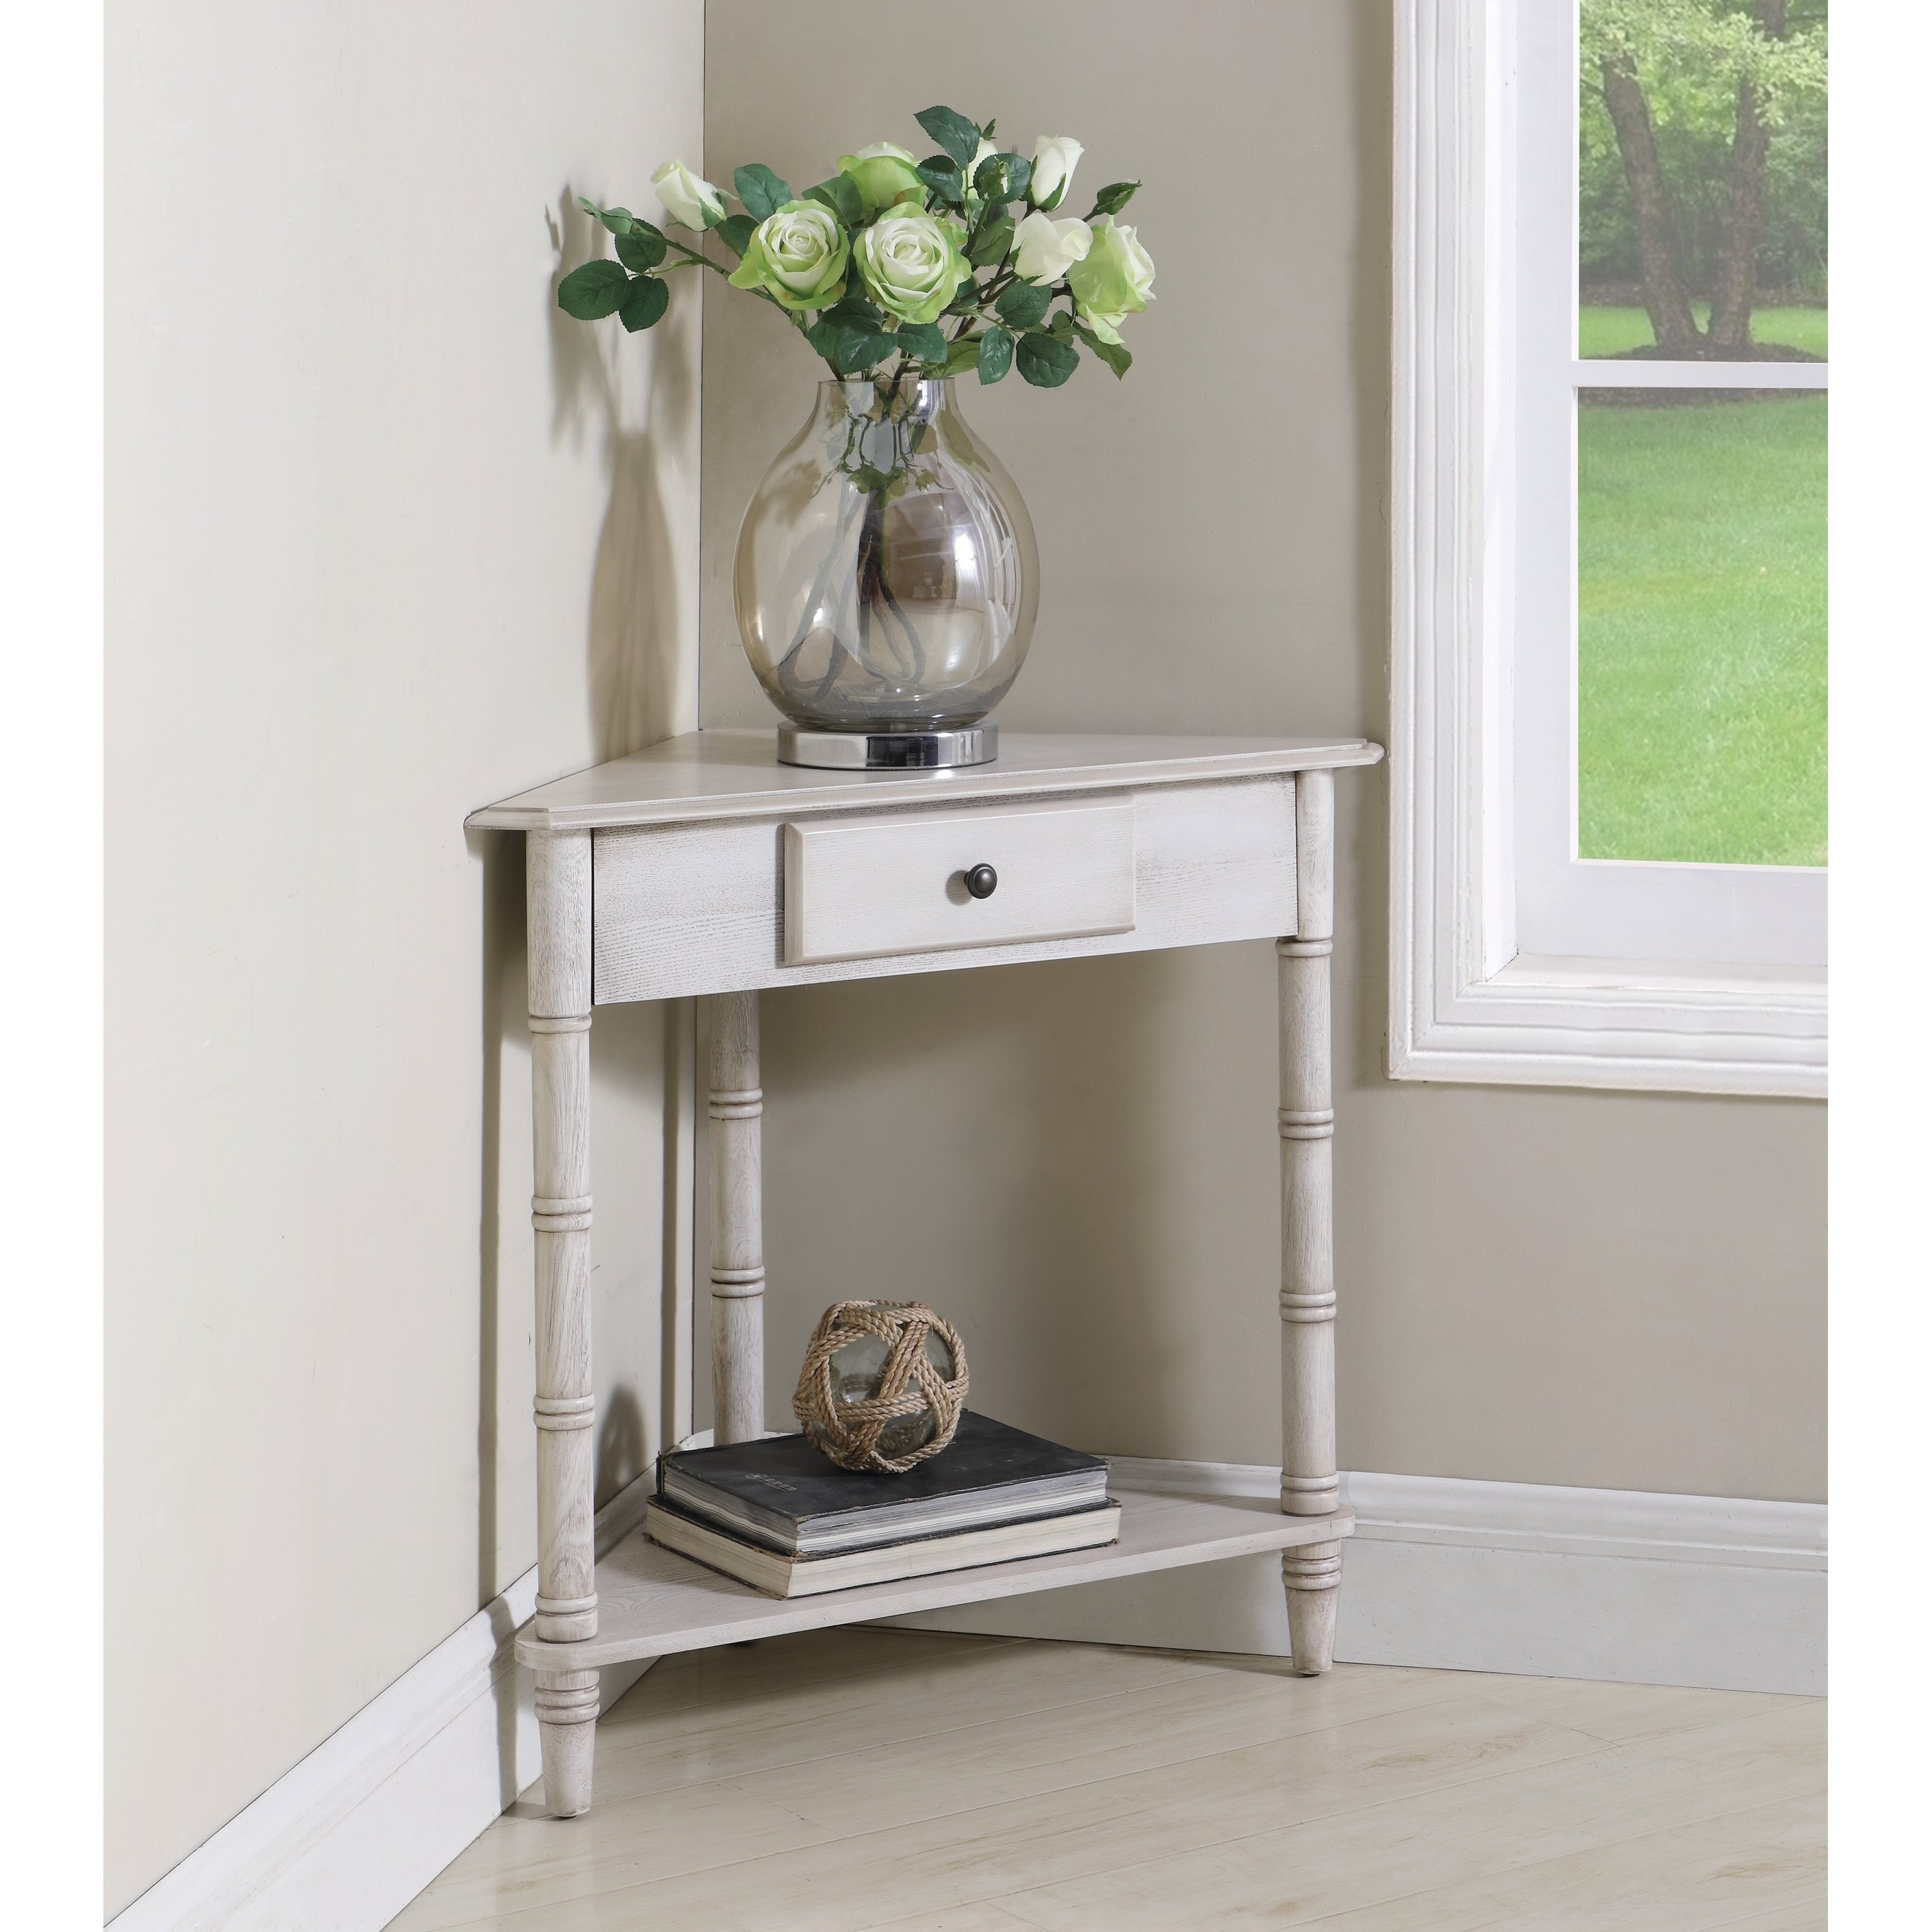 drawer corner accent table free shipping today with awesome coffee tables nate berkus rugs center ikea large storage unit tall white circular cotton tablecloths target baby